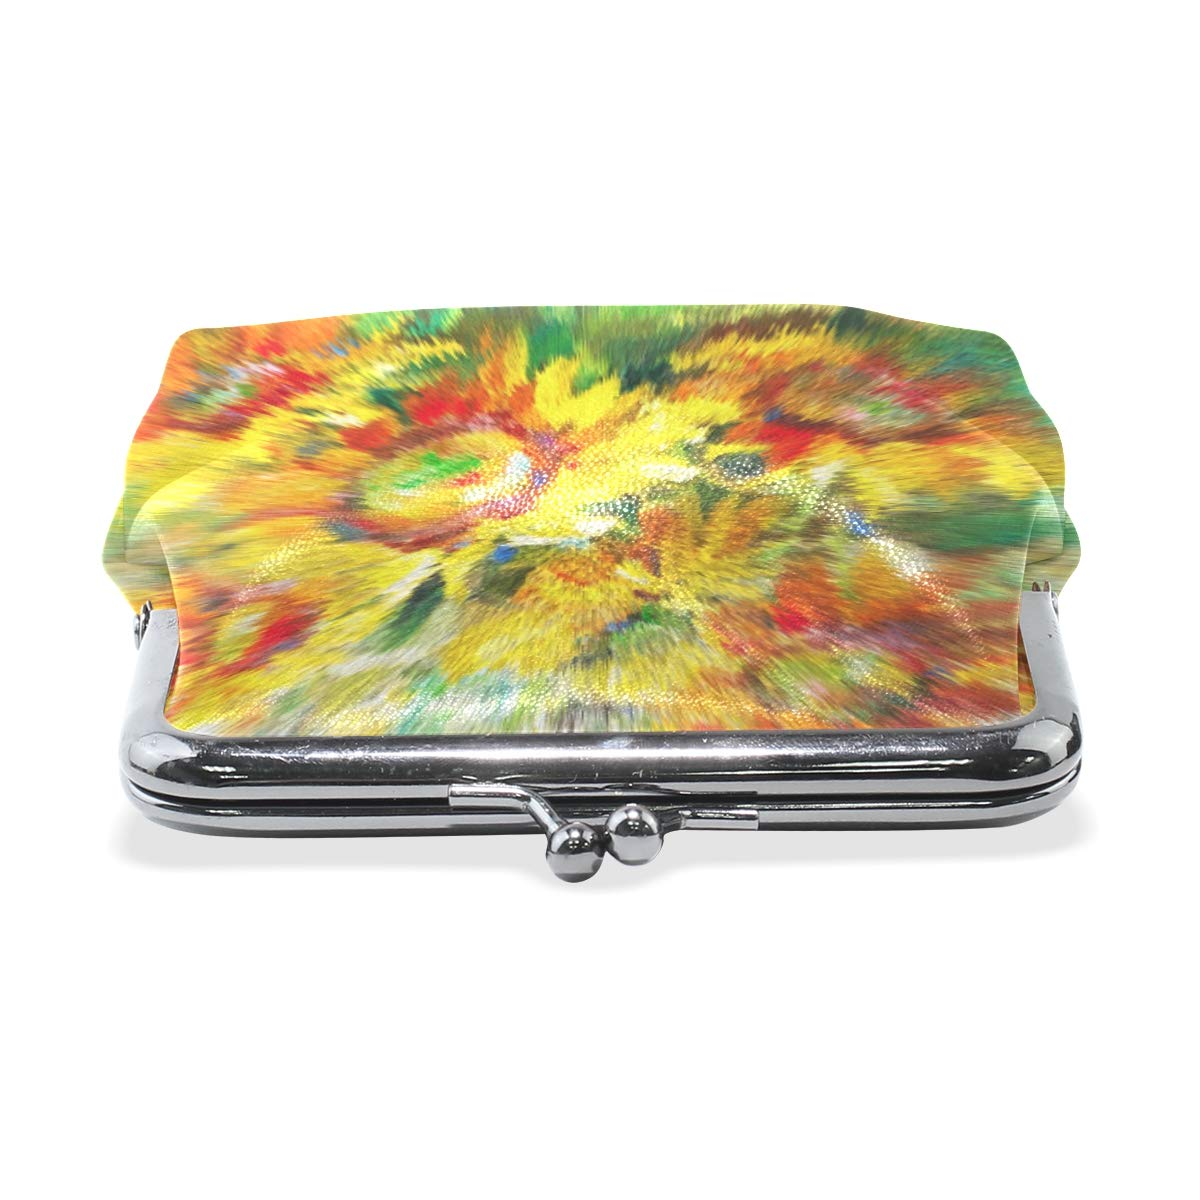 WIHVE Fashion Womens Coin Purse Sunflowers Painting Fragment Vintage Pouch Mini Purse Wallets